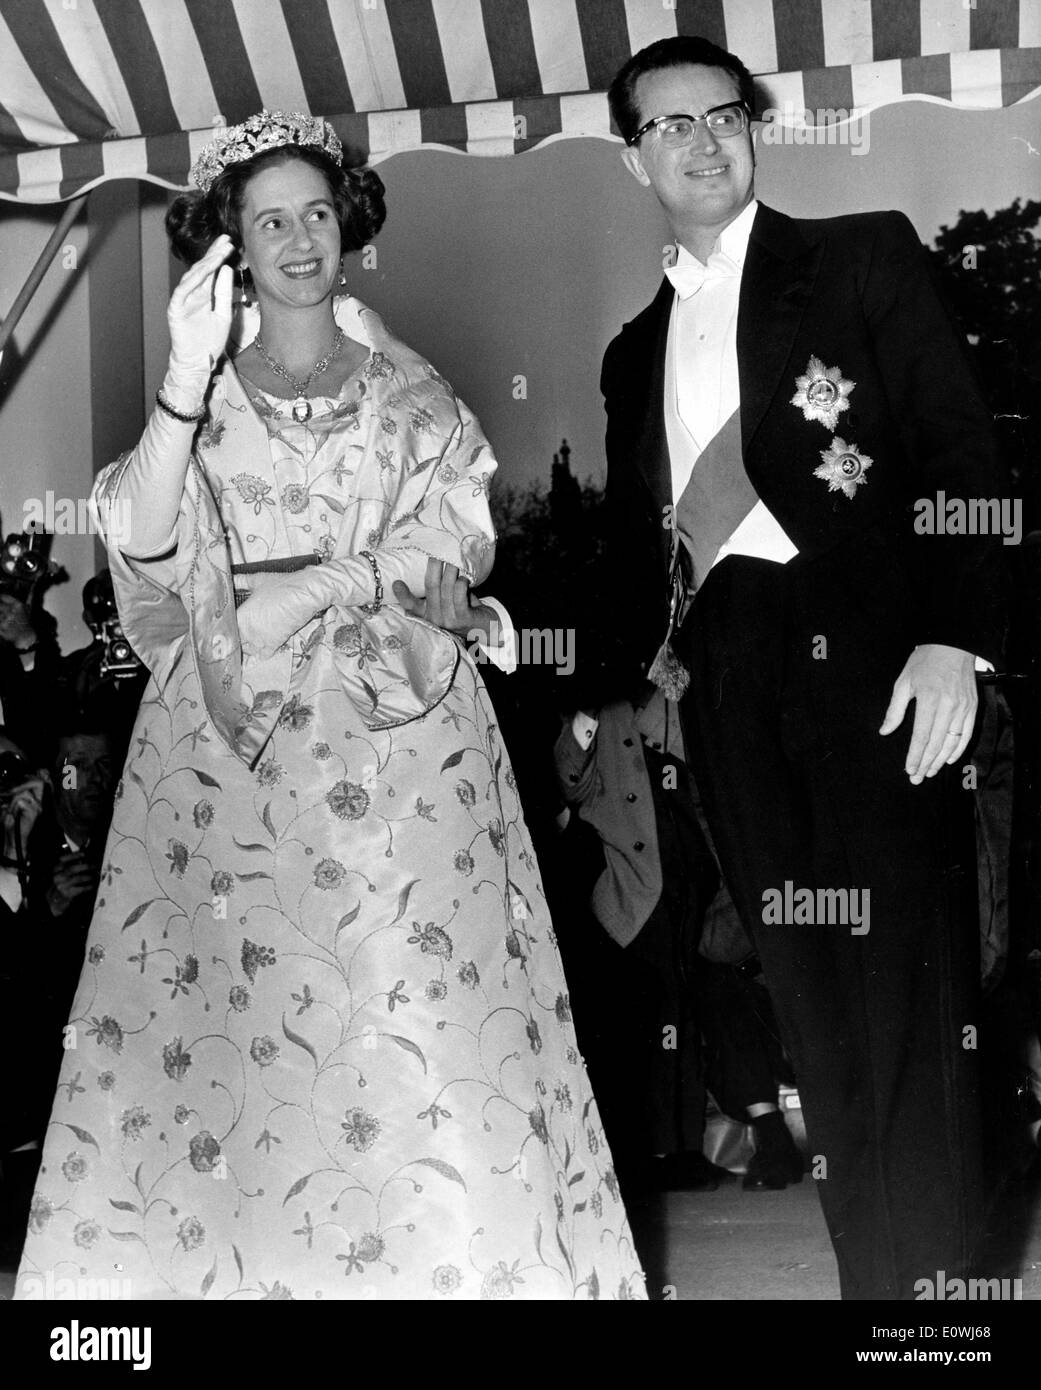 King Baudouin and Queen Fabiola at the Belgian Embassy Stock Photo